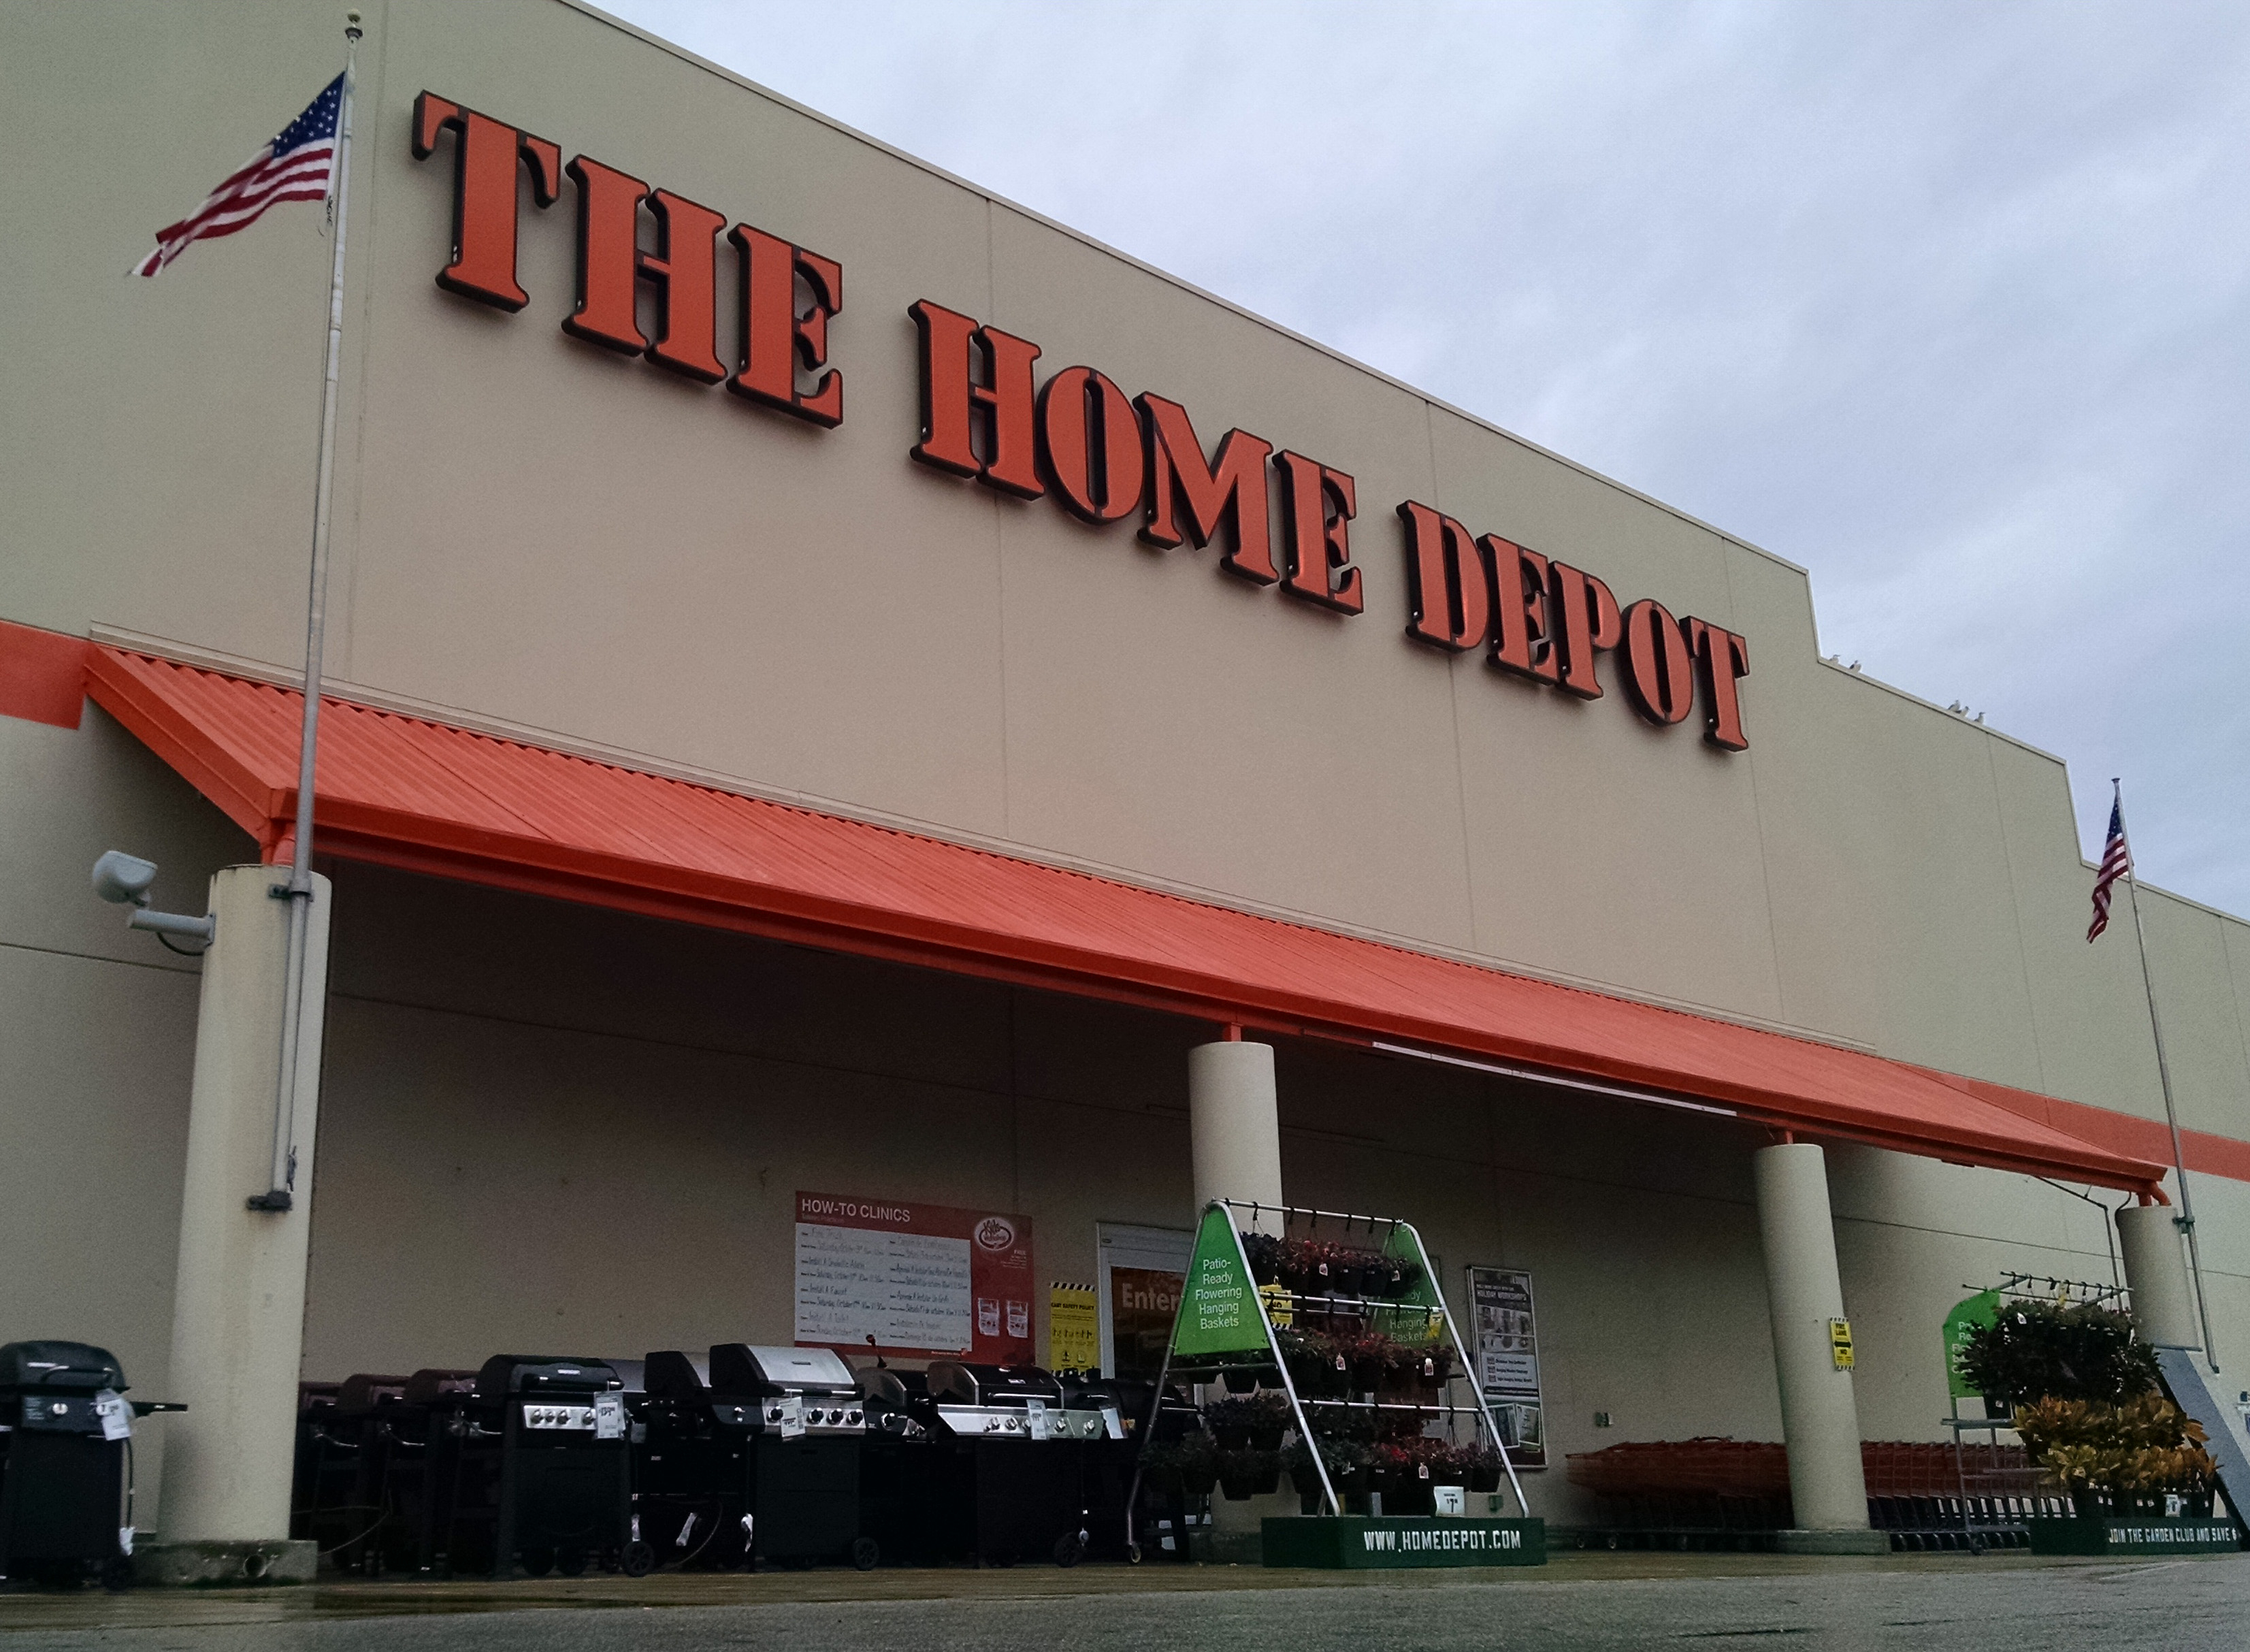 Home Depot Holiday Hours The Home Depot Holiday Fl Business Page